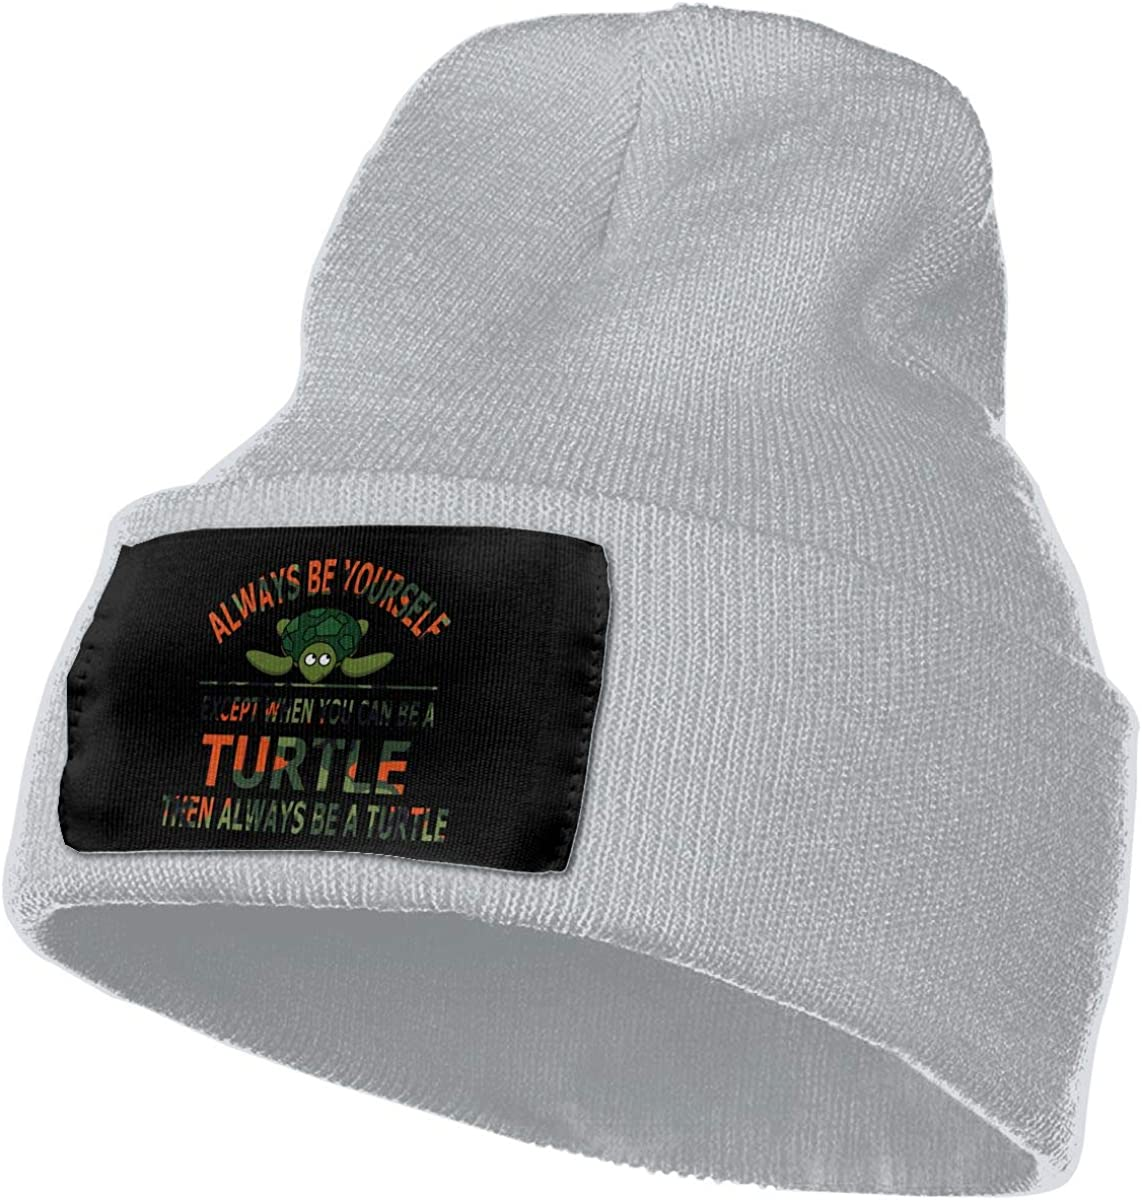 Camouflage Always Be Yourself Turtle Unisex Fashion Knitted Hat Luxury Hip-Hop Cap